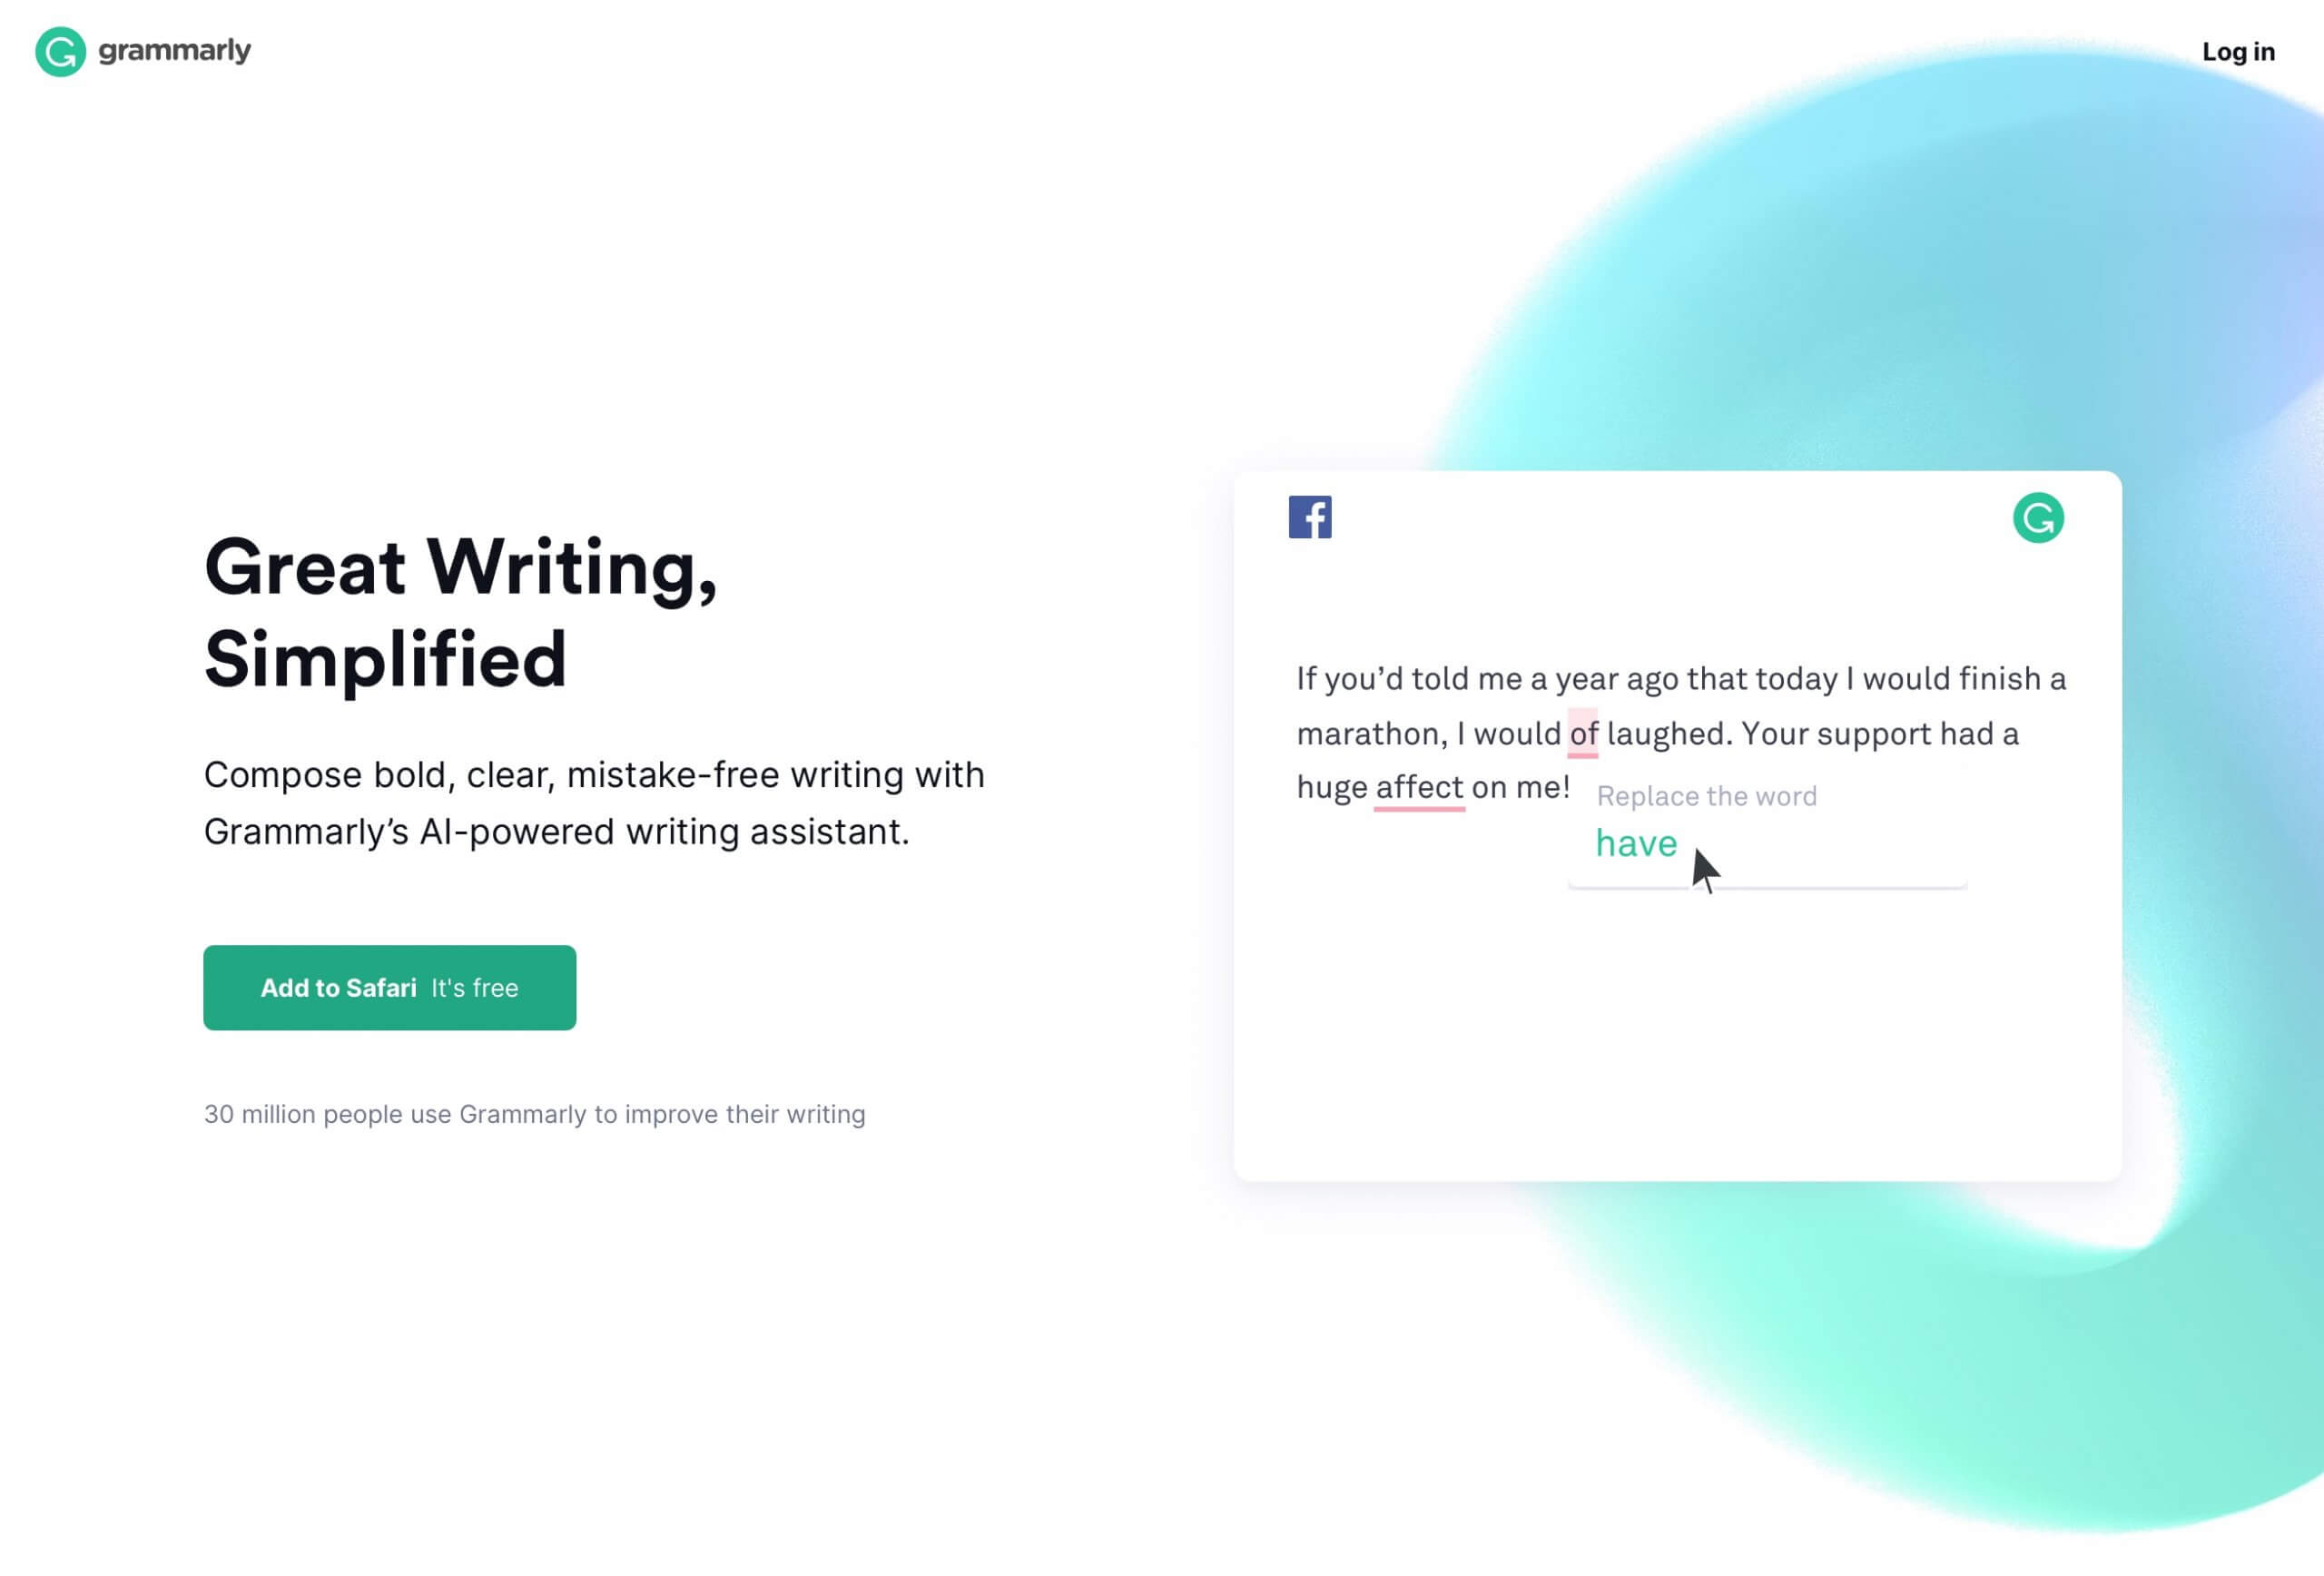 grammarly review-2-home page